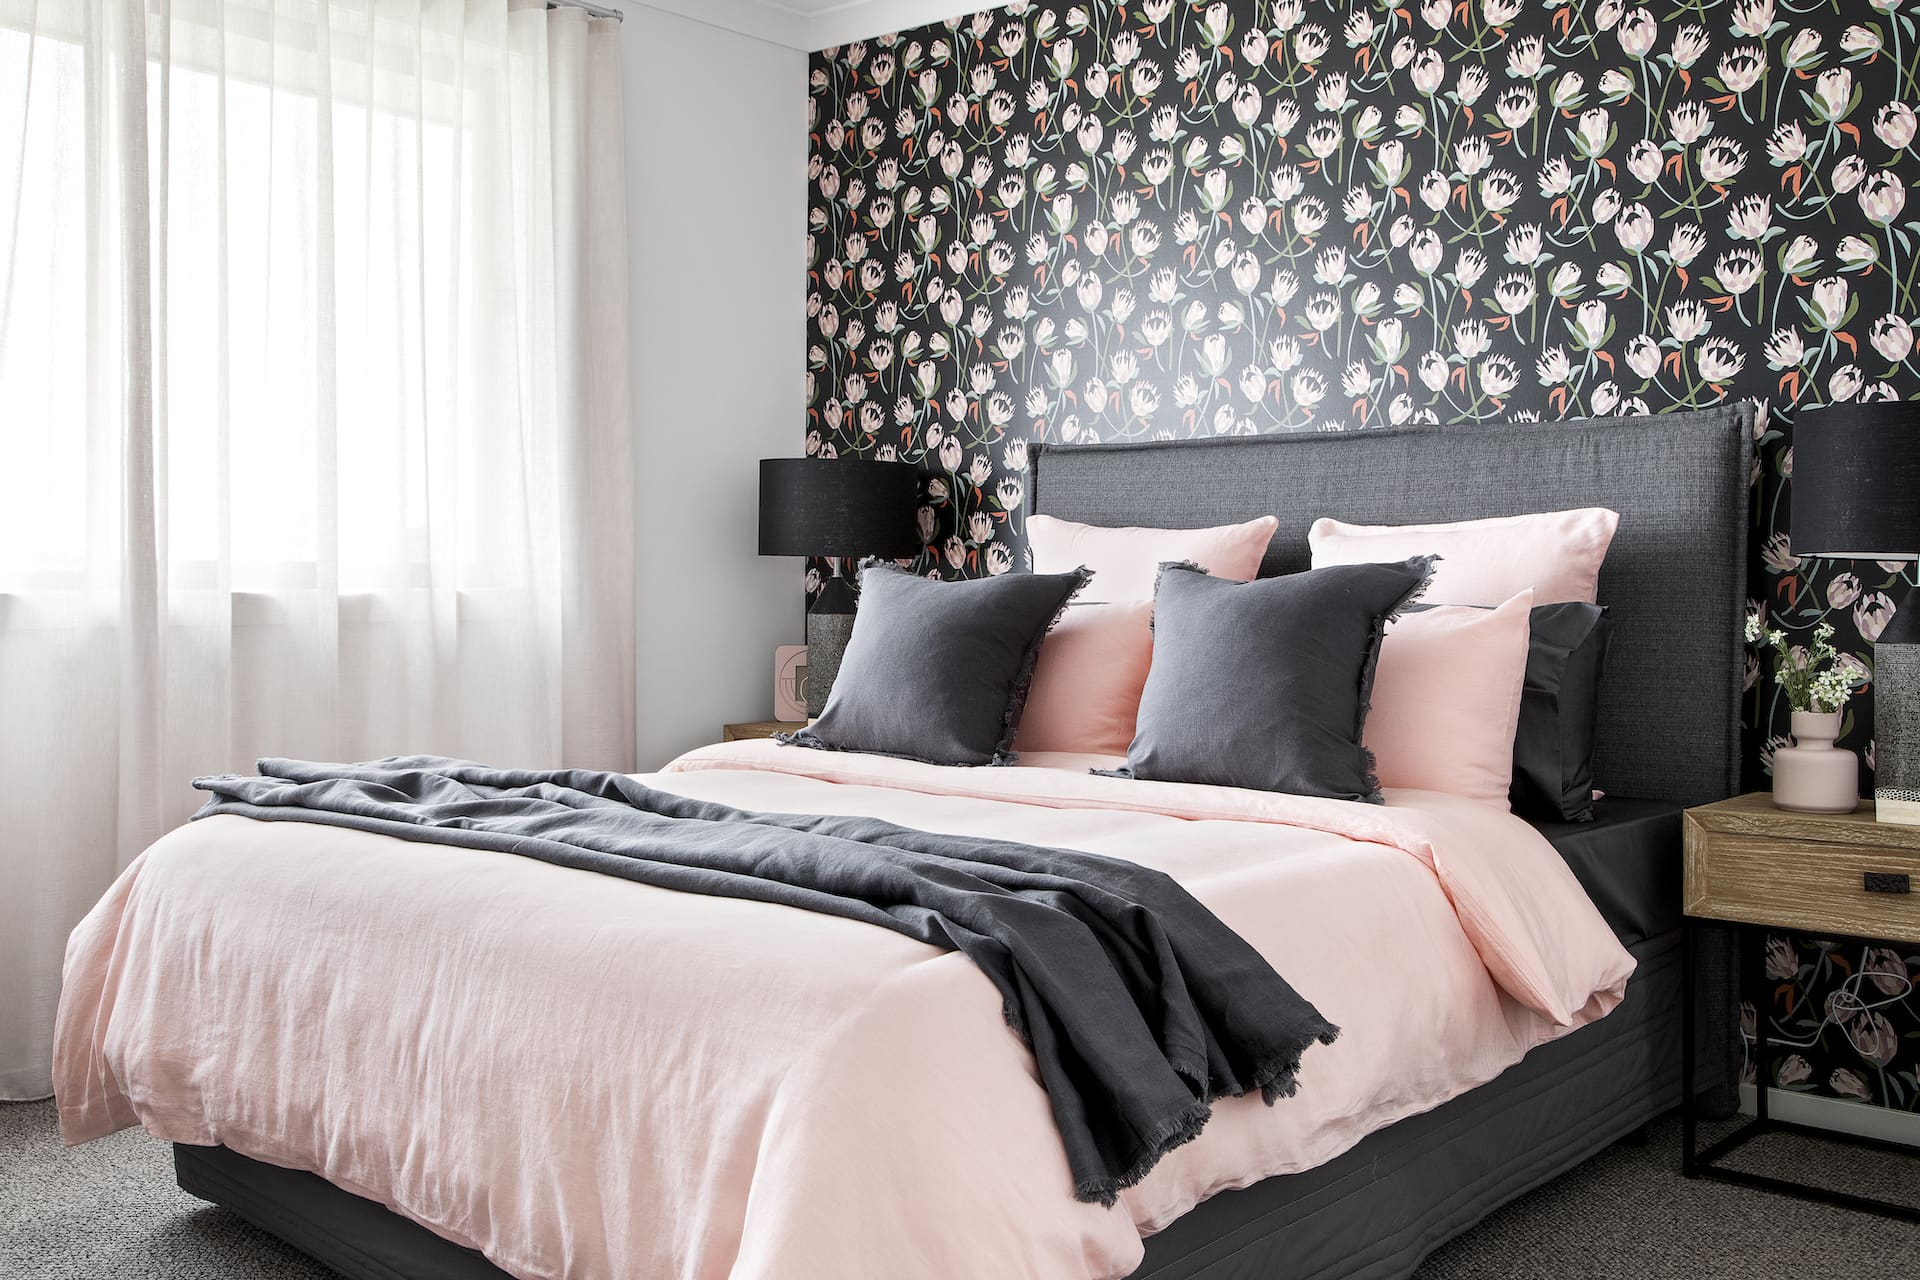 bedroom with pink quilt cover set and black and pink floral wallpaper australiana theme